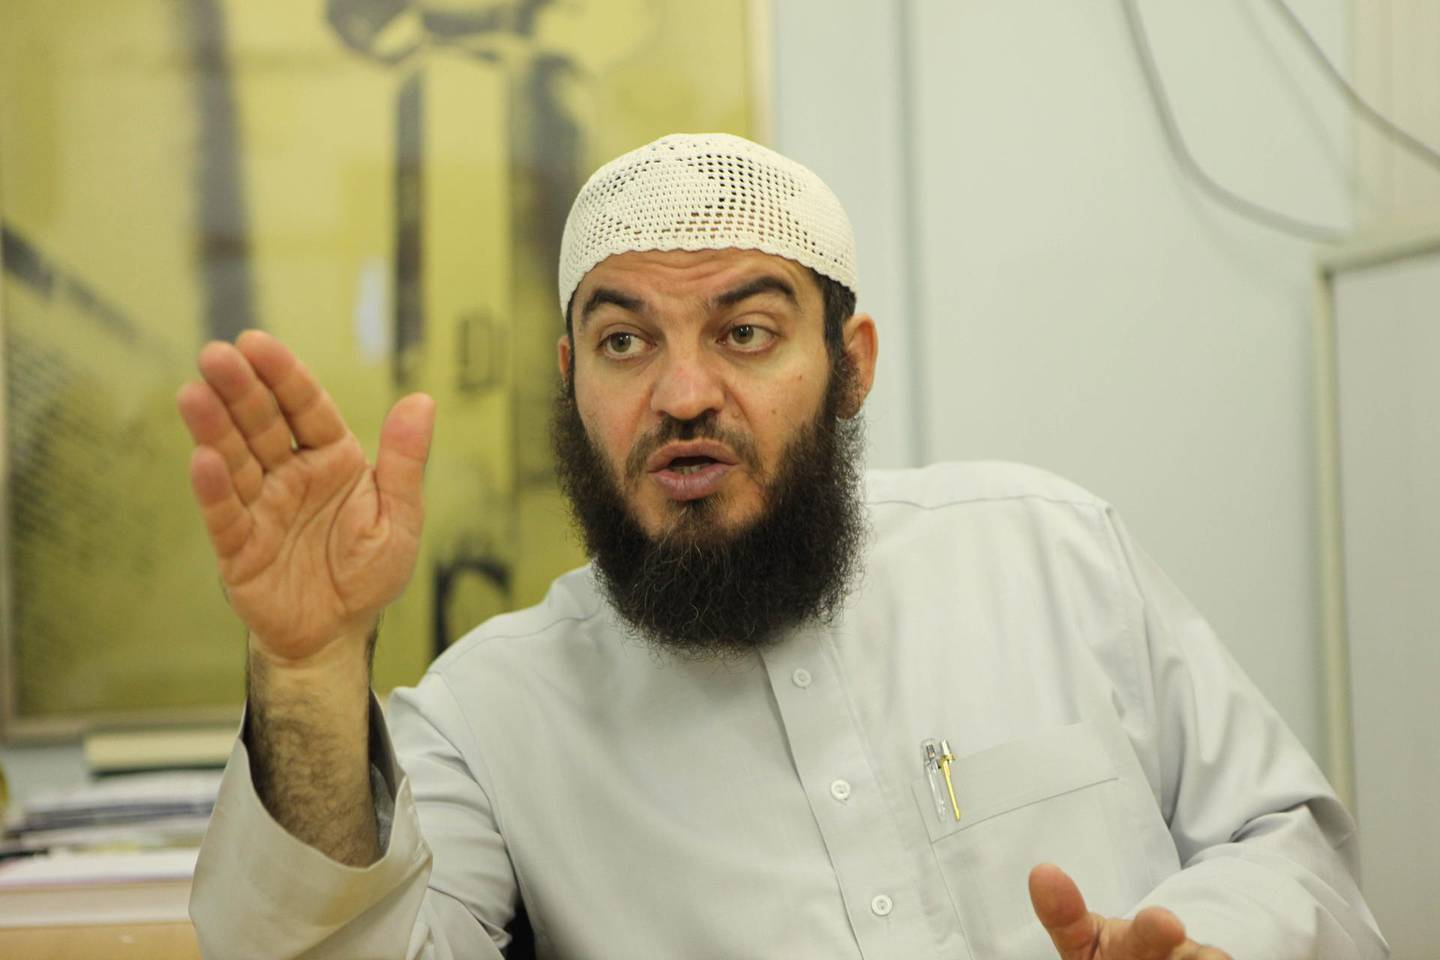 Sheikh Haitham Al-Haddad of the Islamic Sharia Council in the room they use for counselling (they try not to call it a court) in the Masjid & Madrasah al-Tawhid (Mosque) in Leyton, east London, while their own building is being re-built.  Photograph by Jonathan Player for The National, November 23rd 2009.